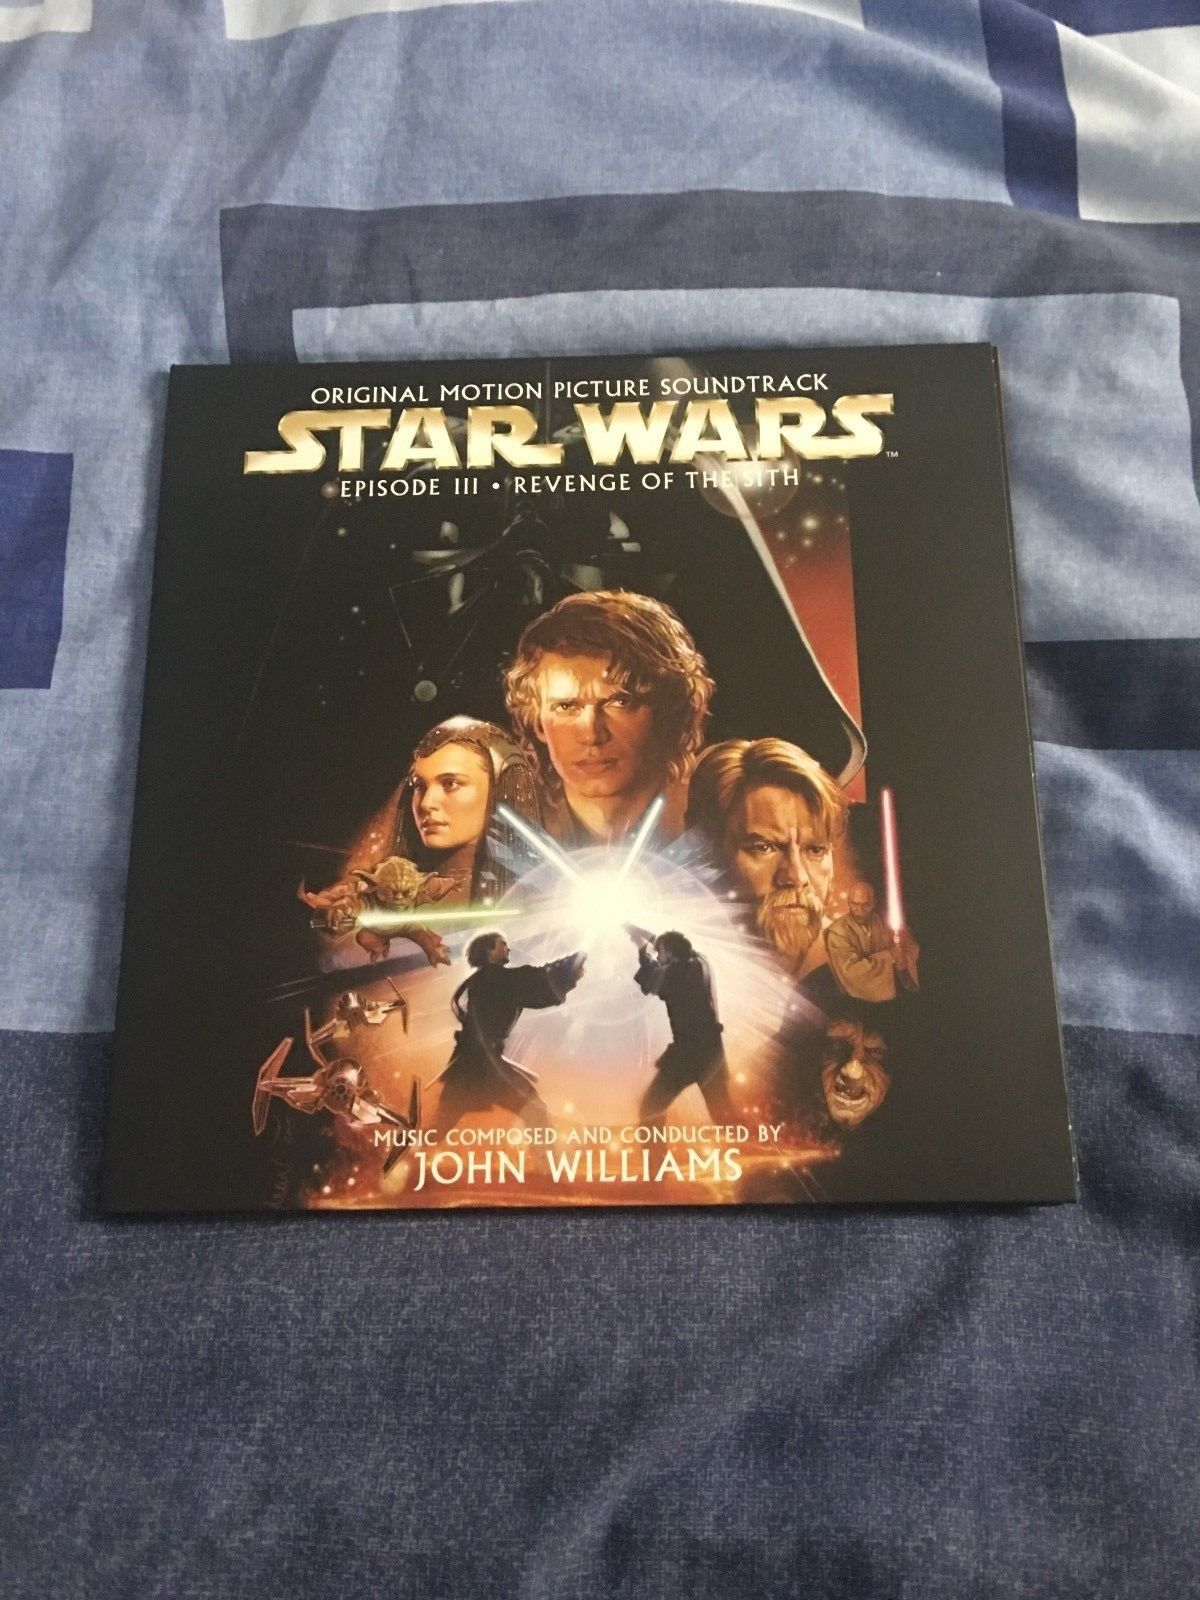 Popsike Com Star Wars Episode Iii Revenge Of The Sith 12 Inch Double Vinyl Album Auction Details